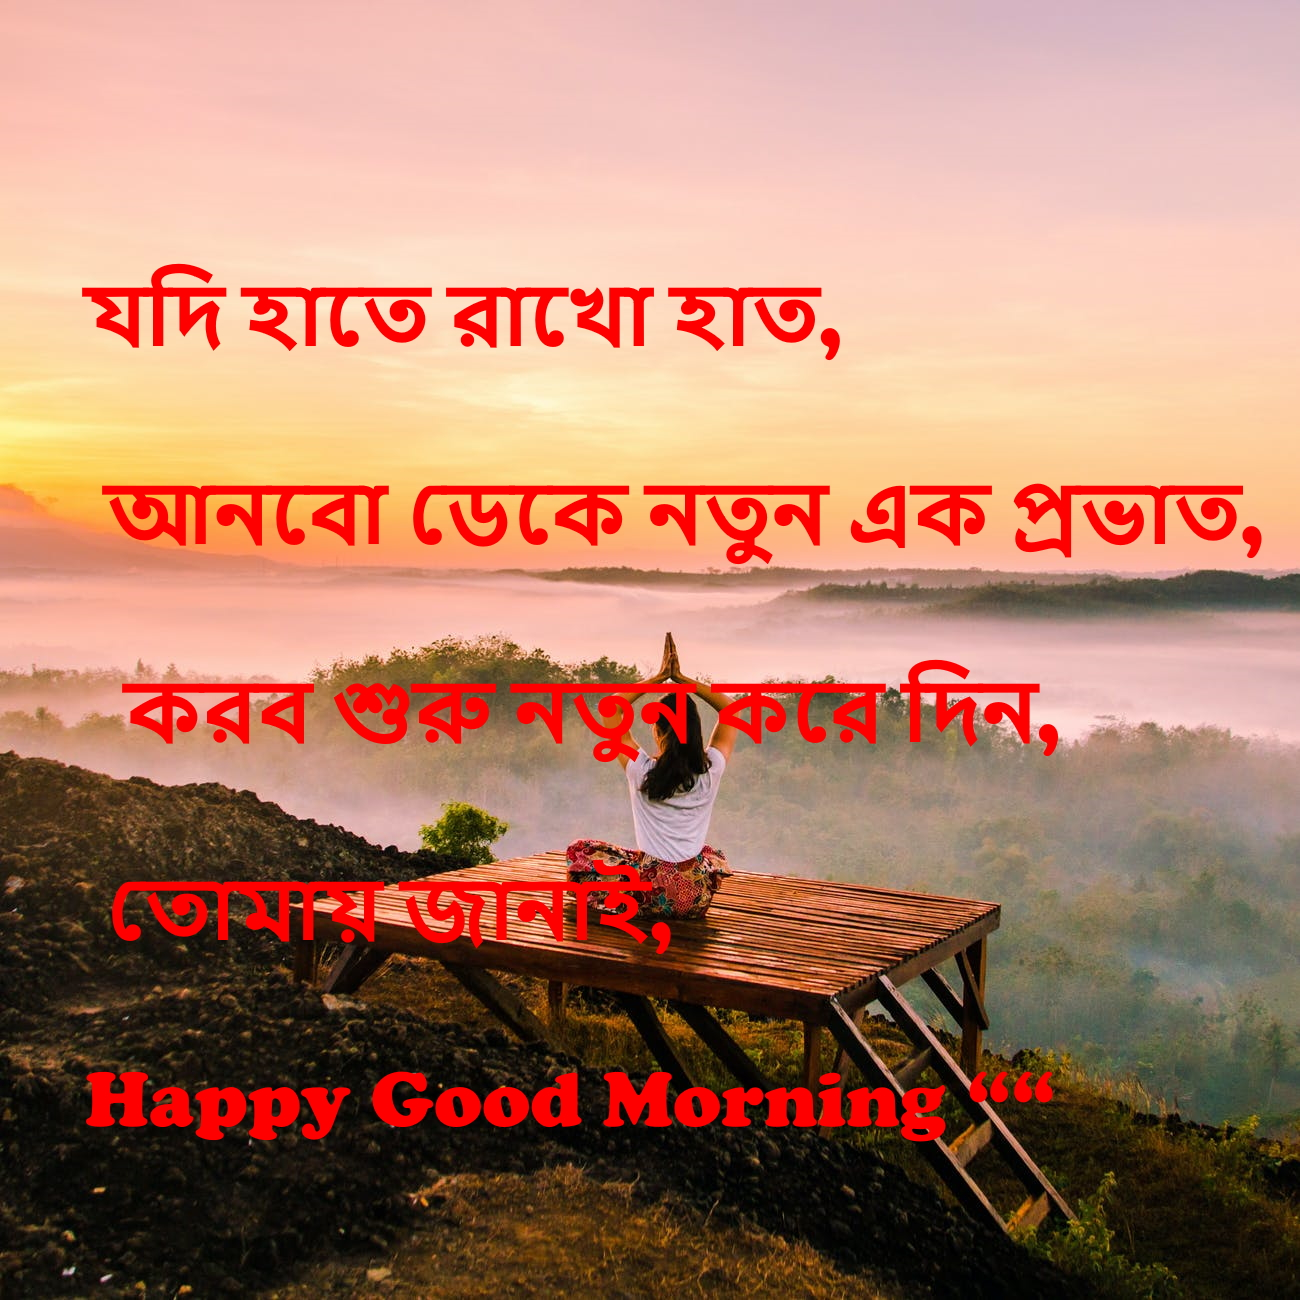 Bangla Good Morning Sms shuvo Sokal Sms And Photos For Girlfriends And Boyfriends